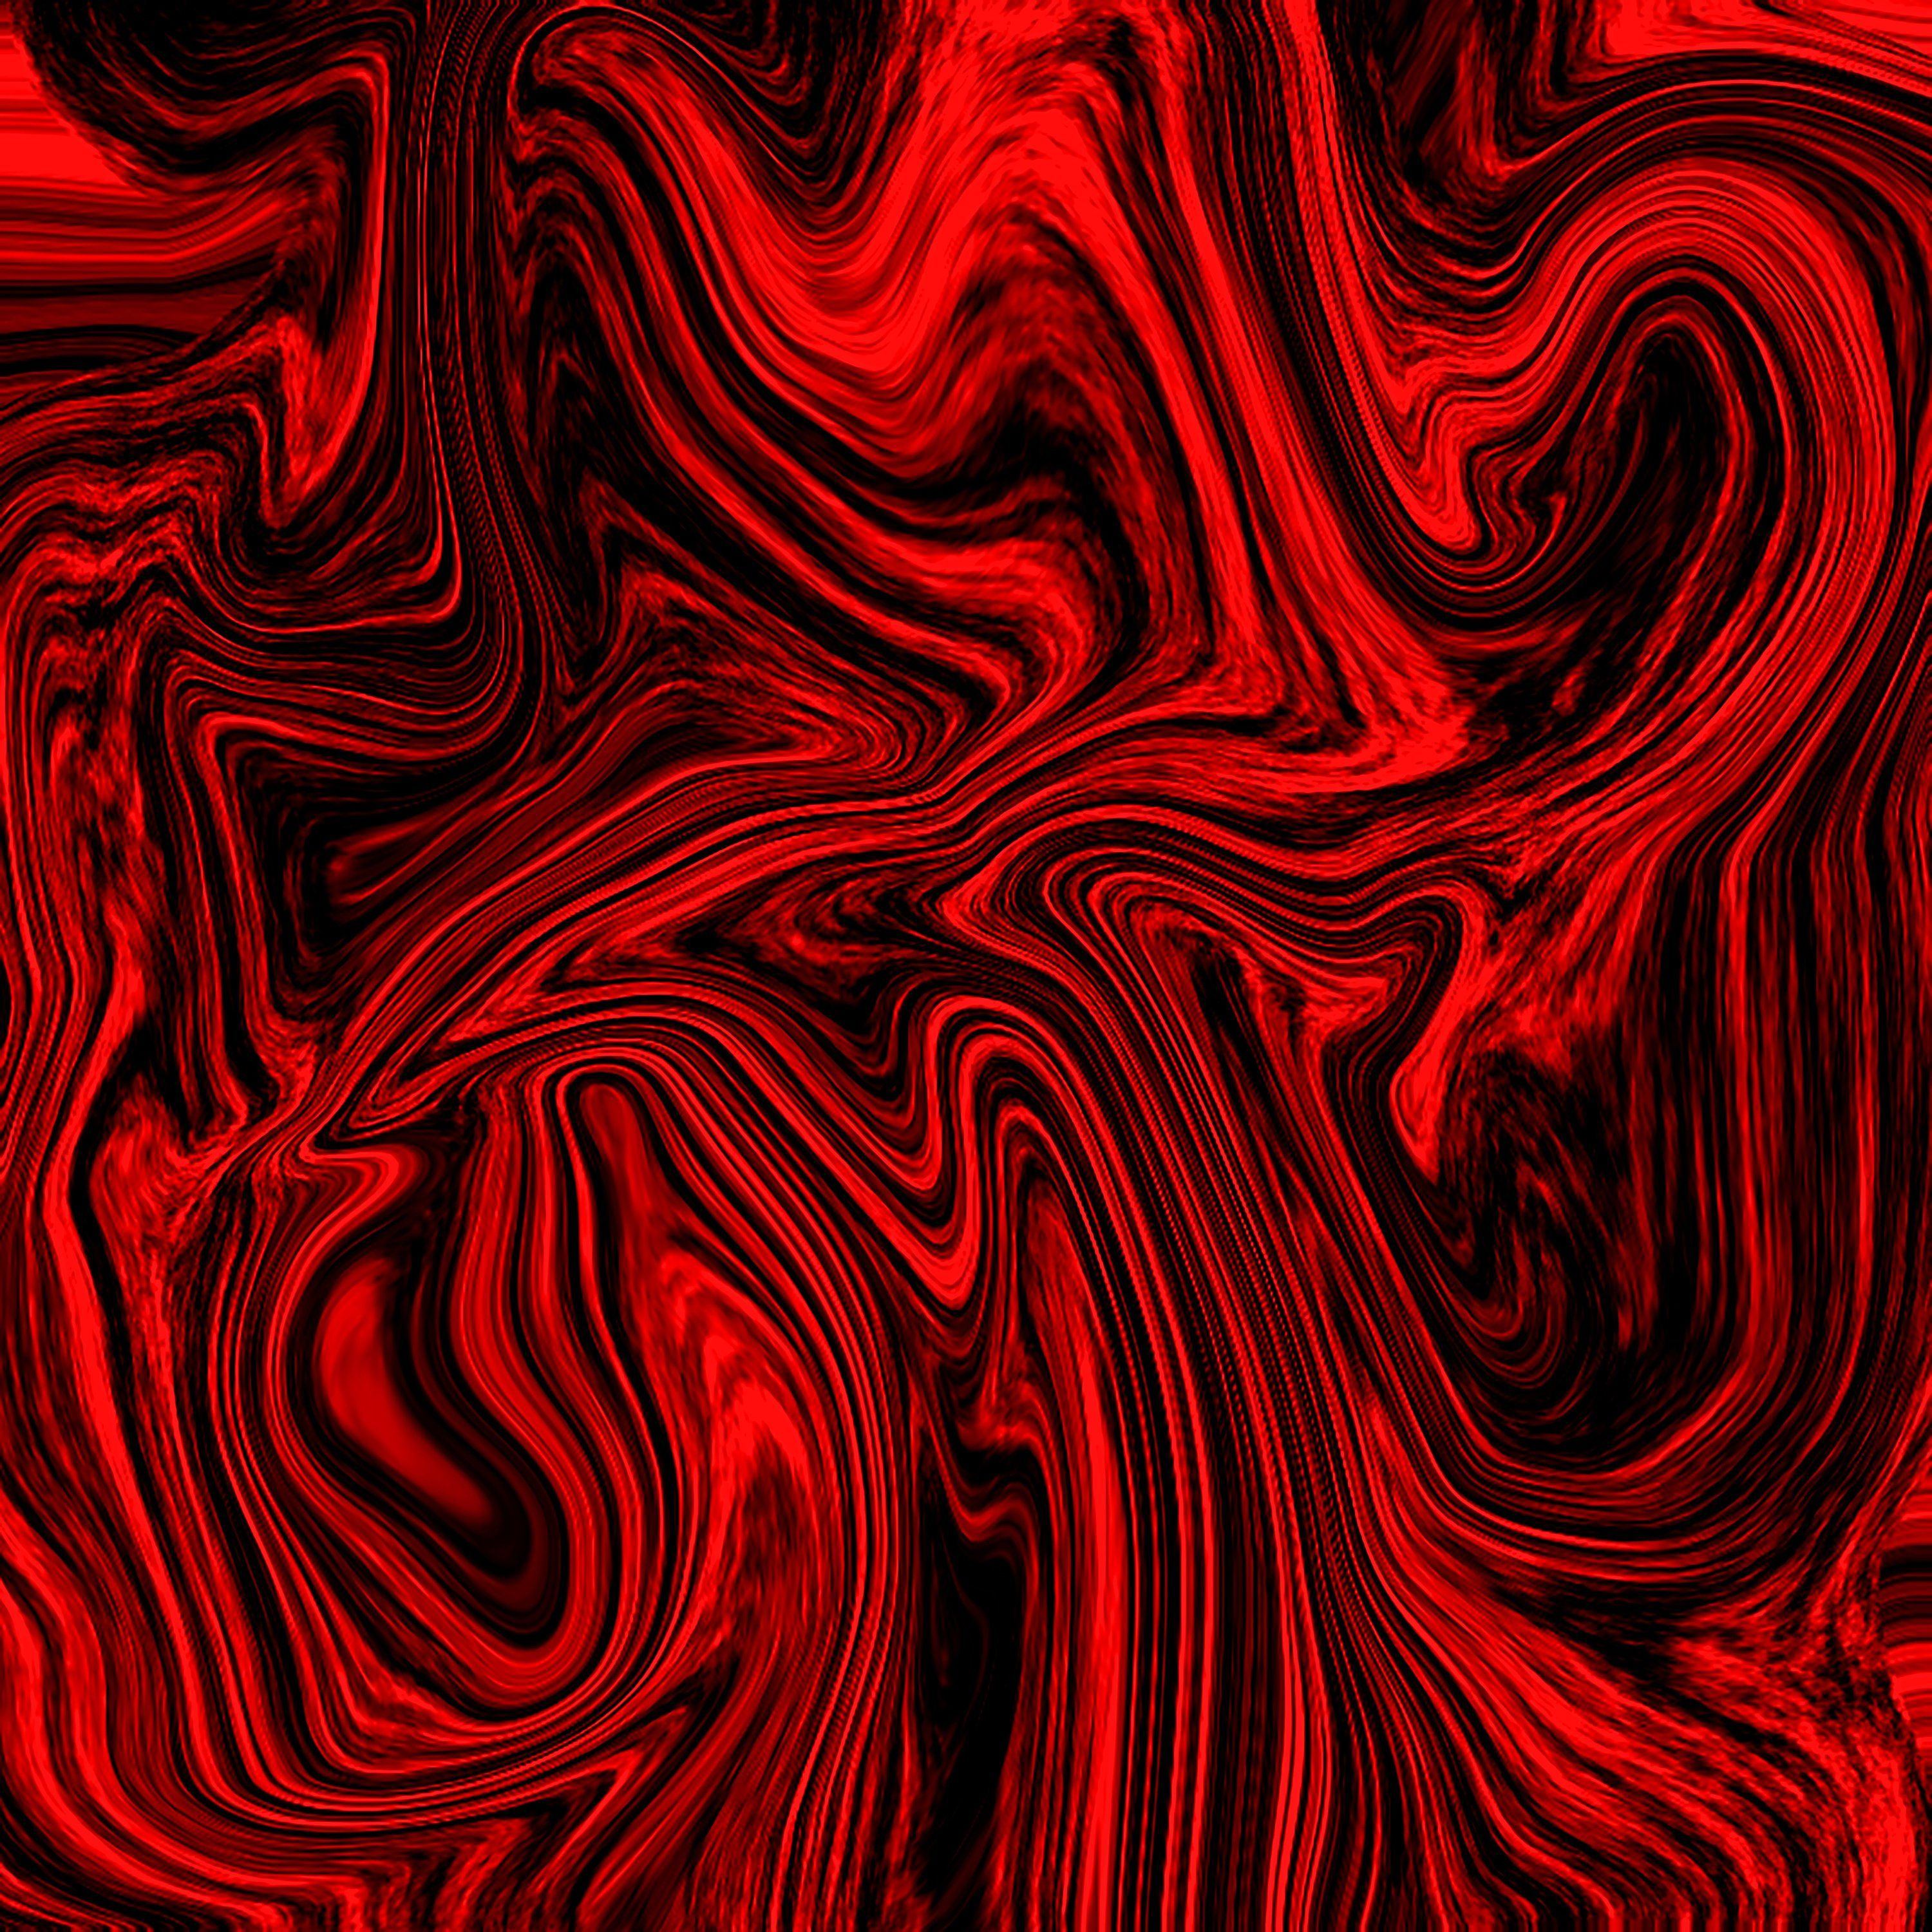 Abstract Fantasy Marble Texture Background In Red And Black Available For Sale Marble Texture Abstract Red Wall Art